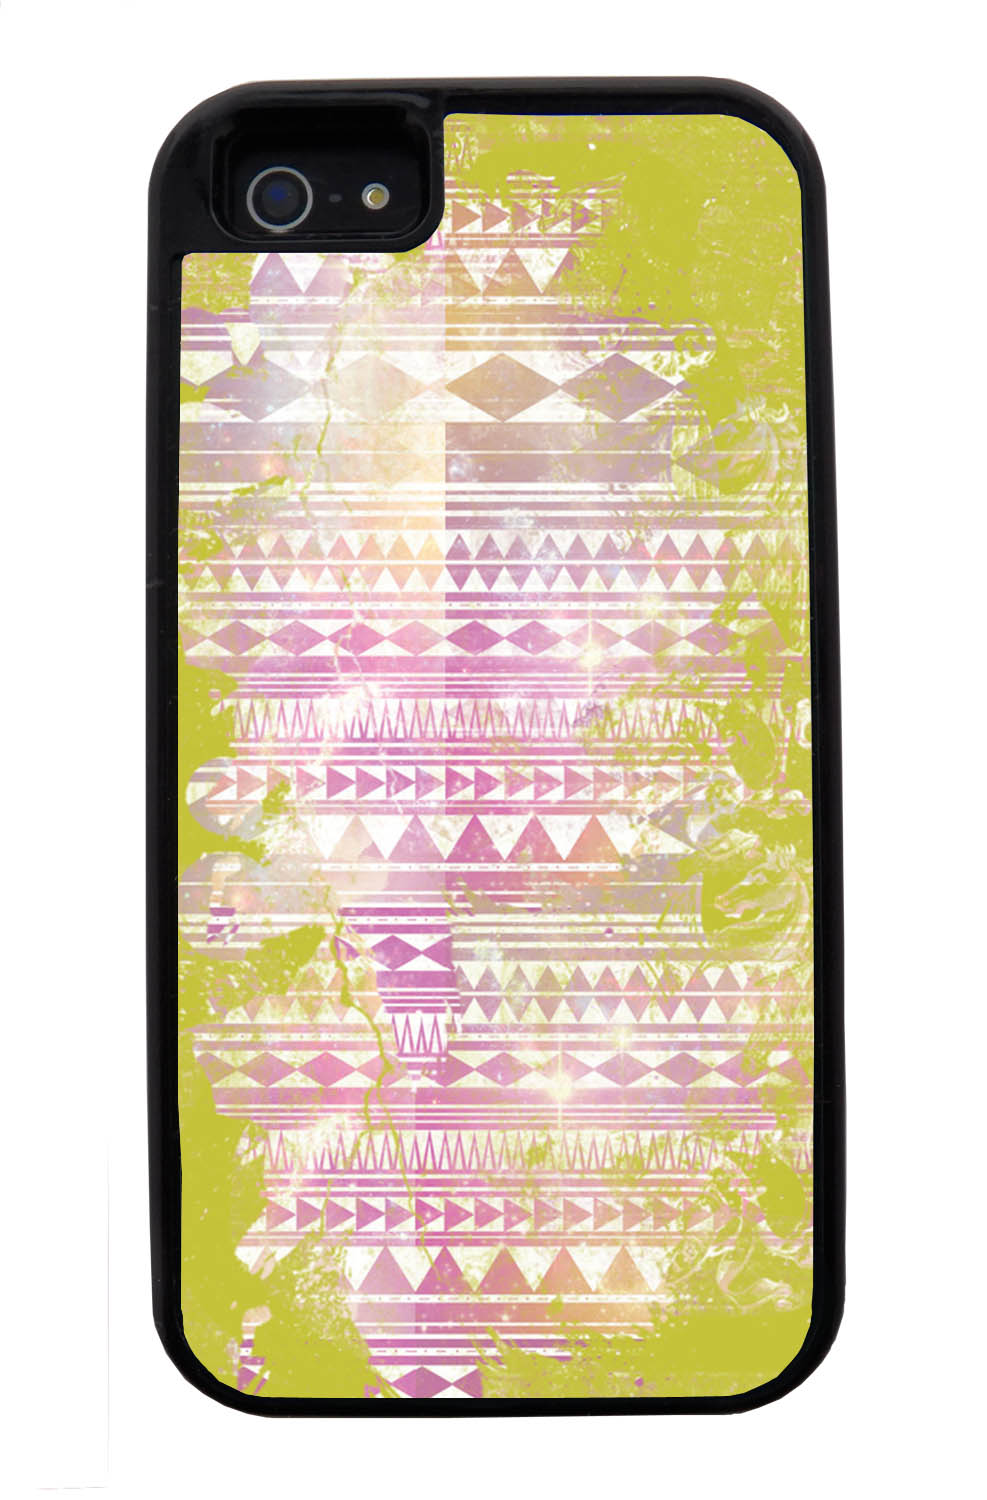 Apple iPhone 5 / 5S Aztec Case - Yellow and White Paint with Pink - Paint Splatter Overlay - Black Tough Hybrid Case